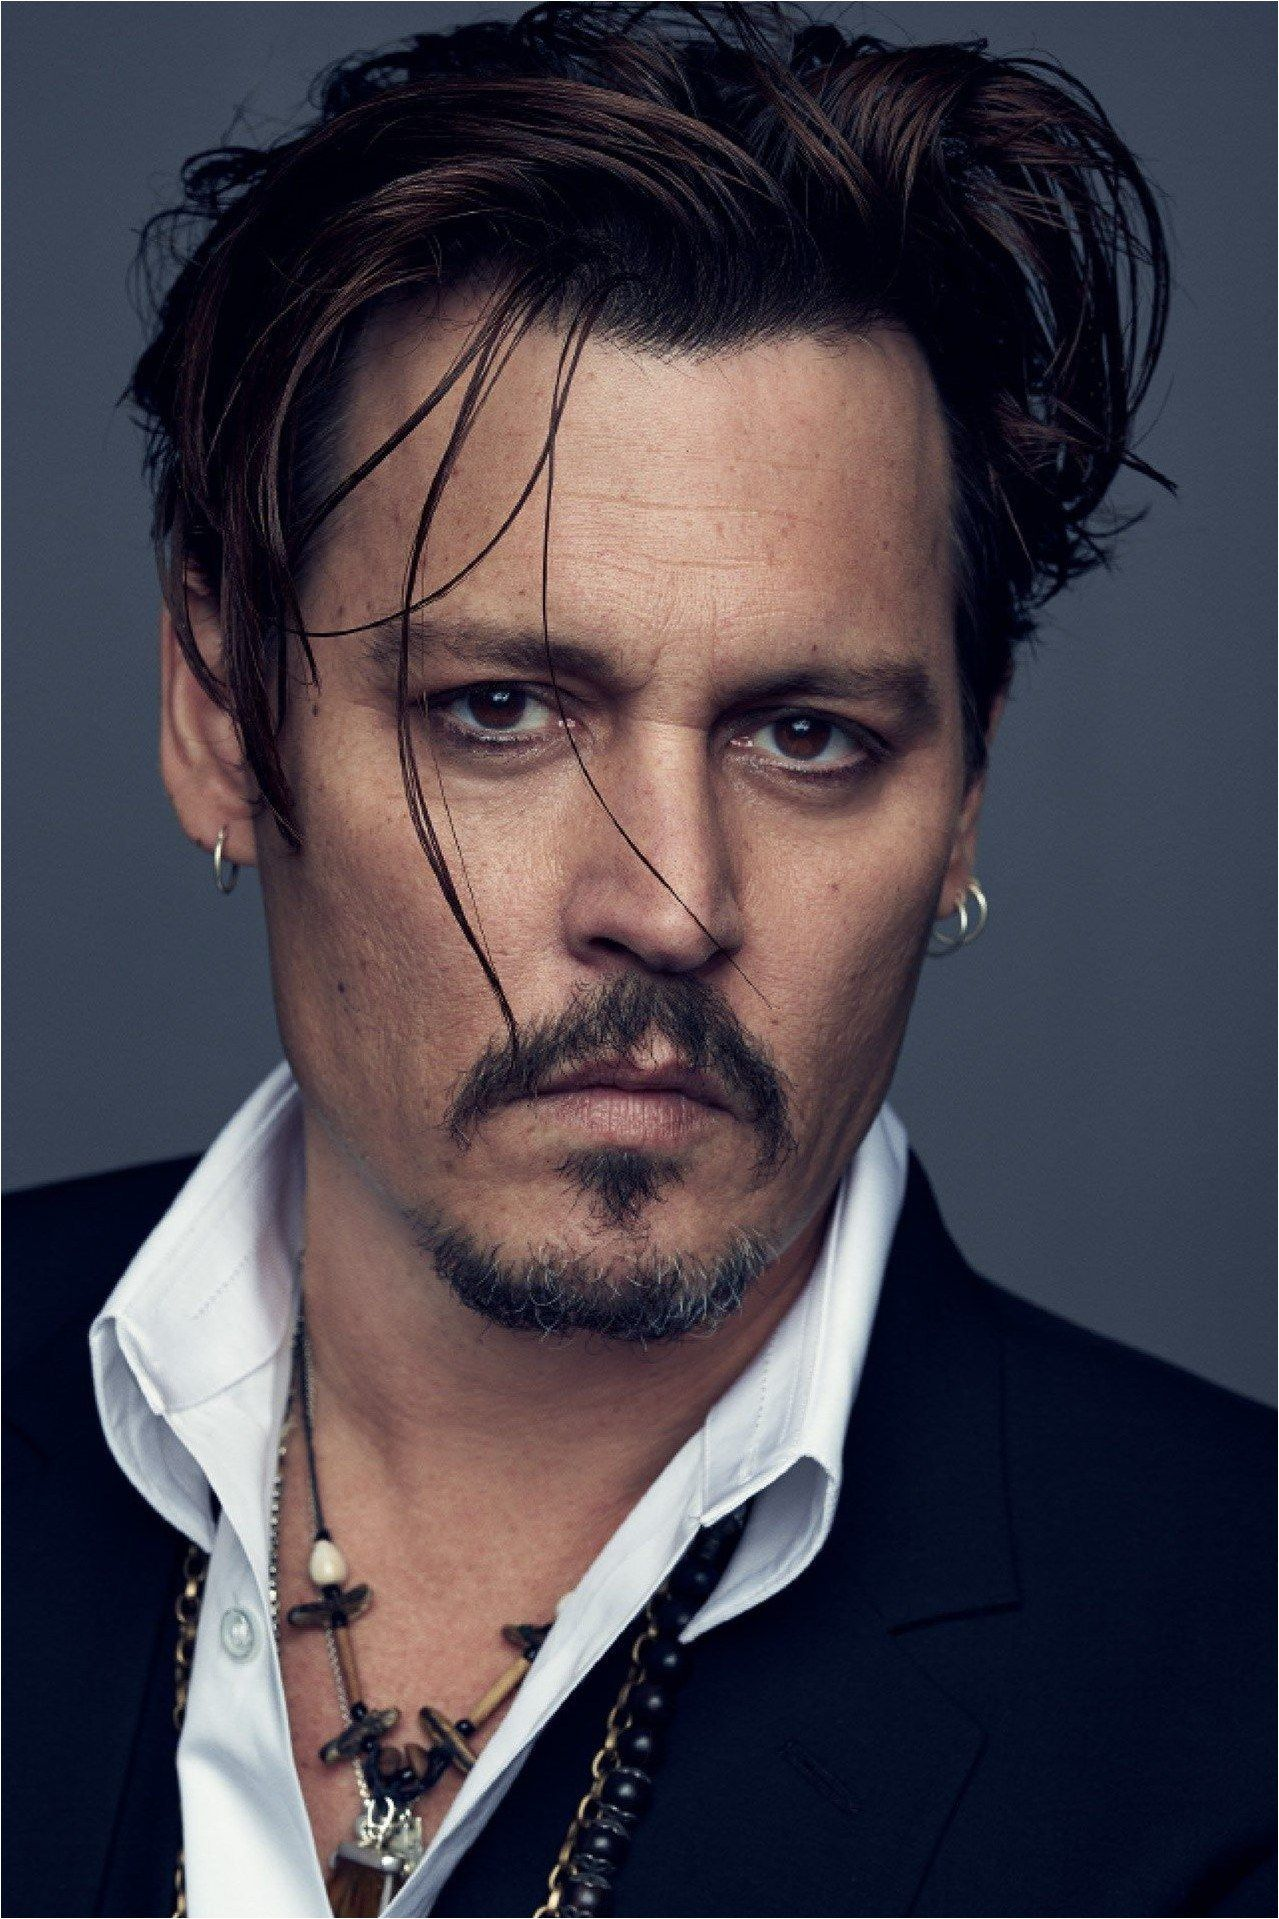 hairstyles #longhairstyles johnny-depp-new-long-hairstyle